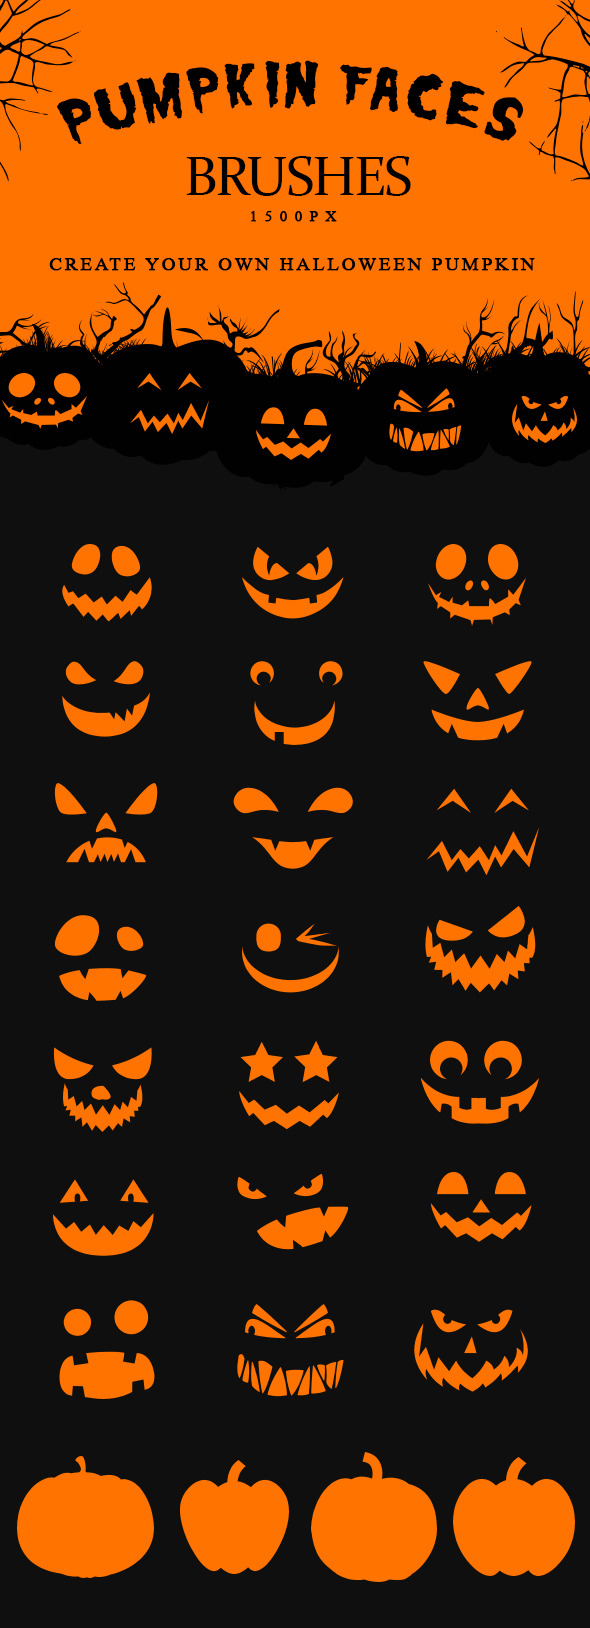 Pumpkin Faces Brushes Halloween